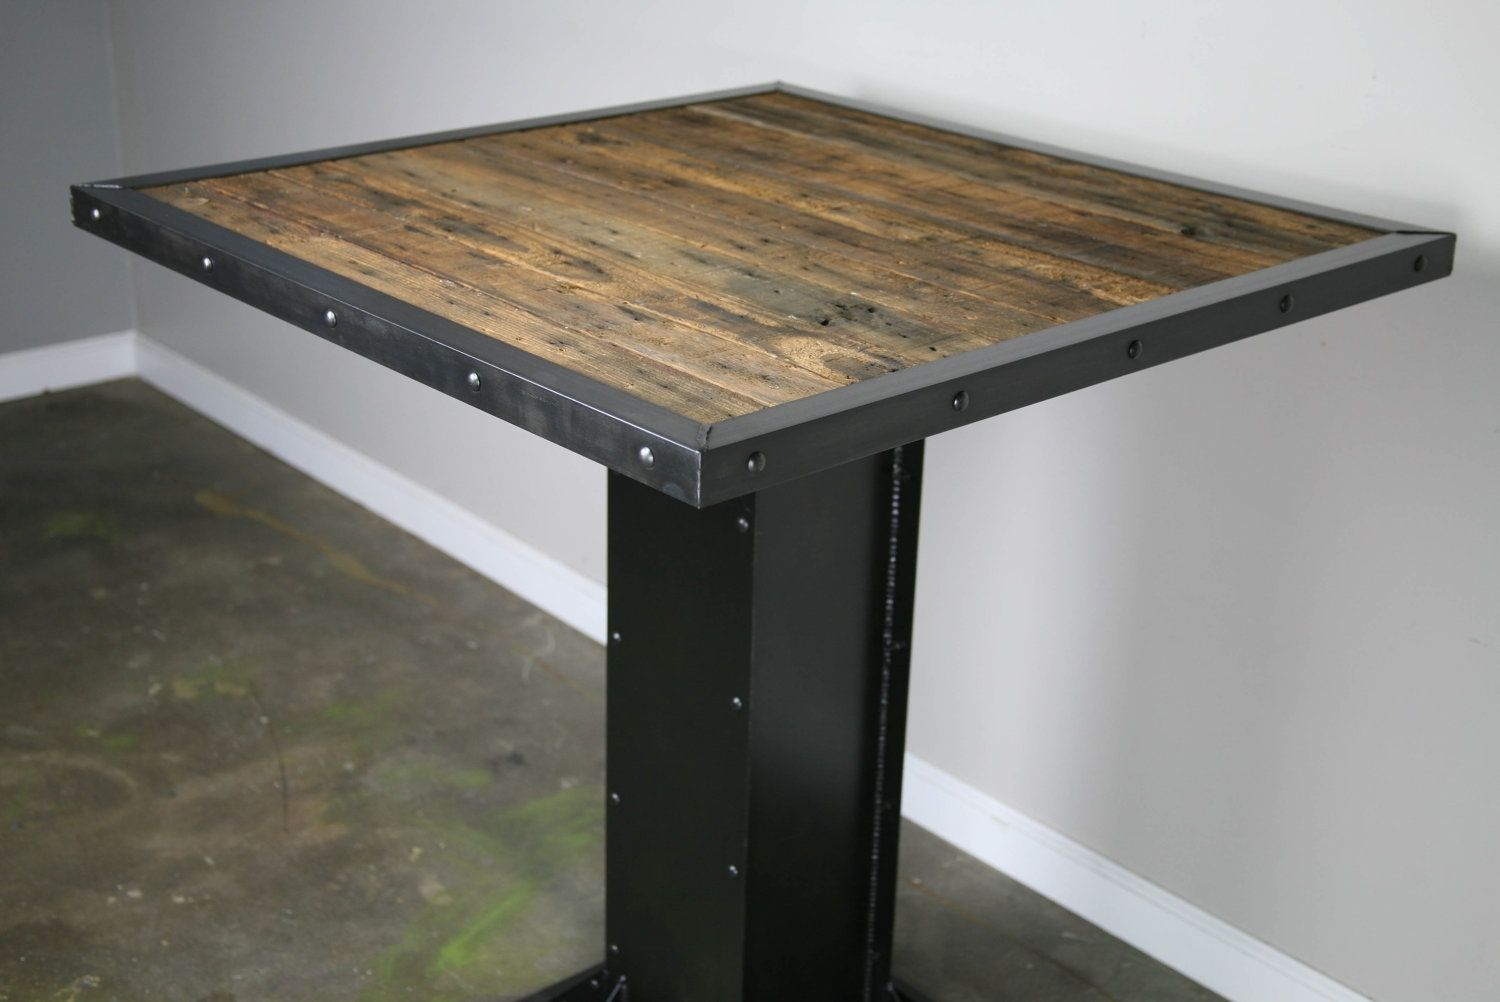 A Hand Made Bistro Dining Table Modern Design Steel Reclaimed Wood Great For Restaurant Or Bar To Order From Combine 9